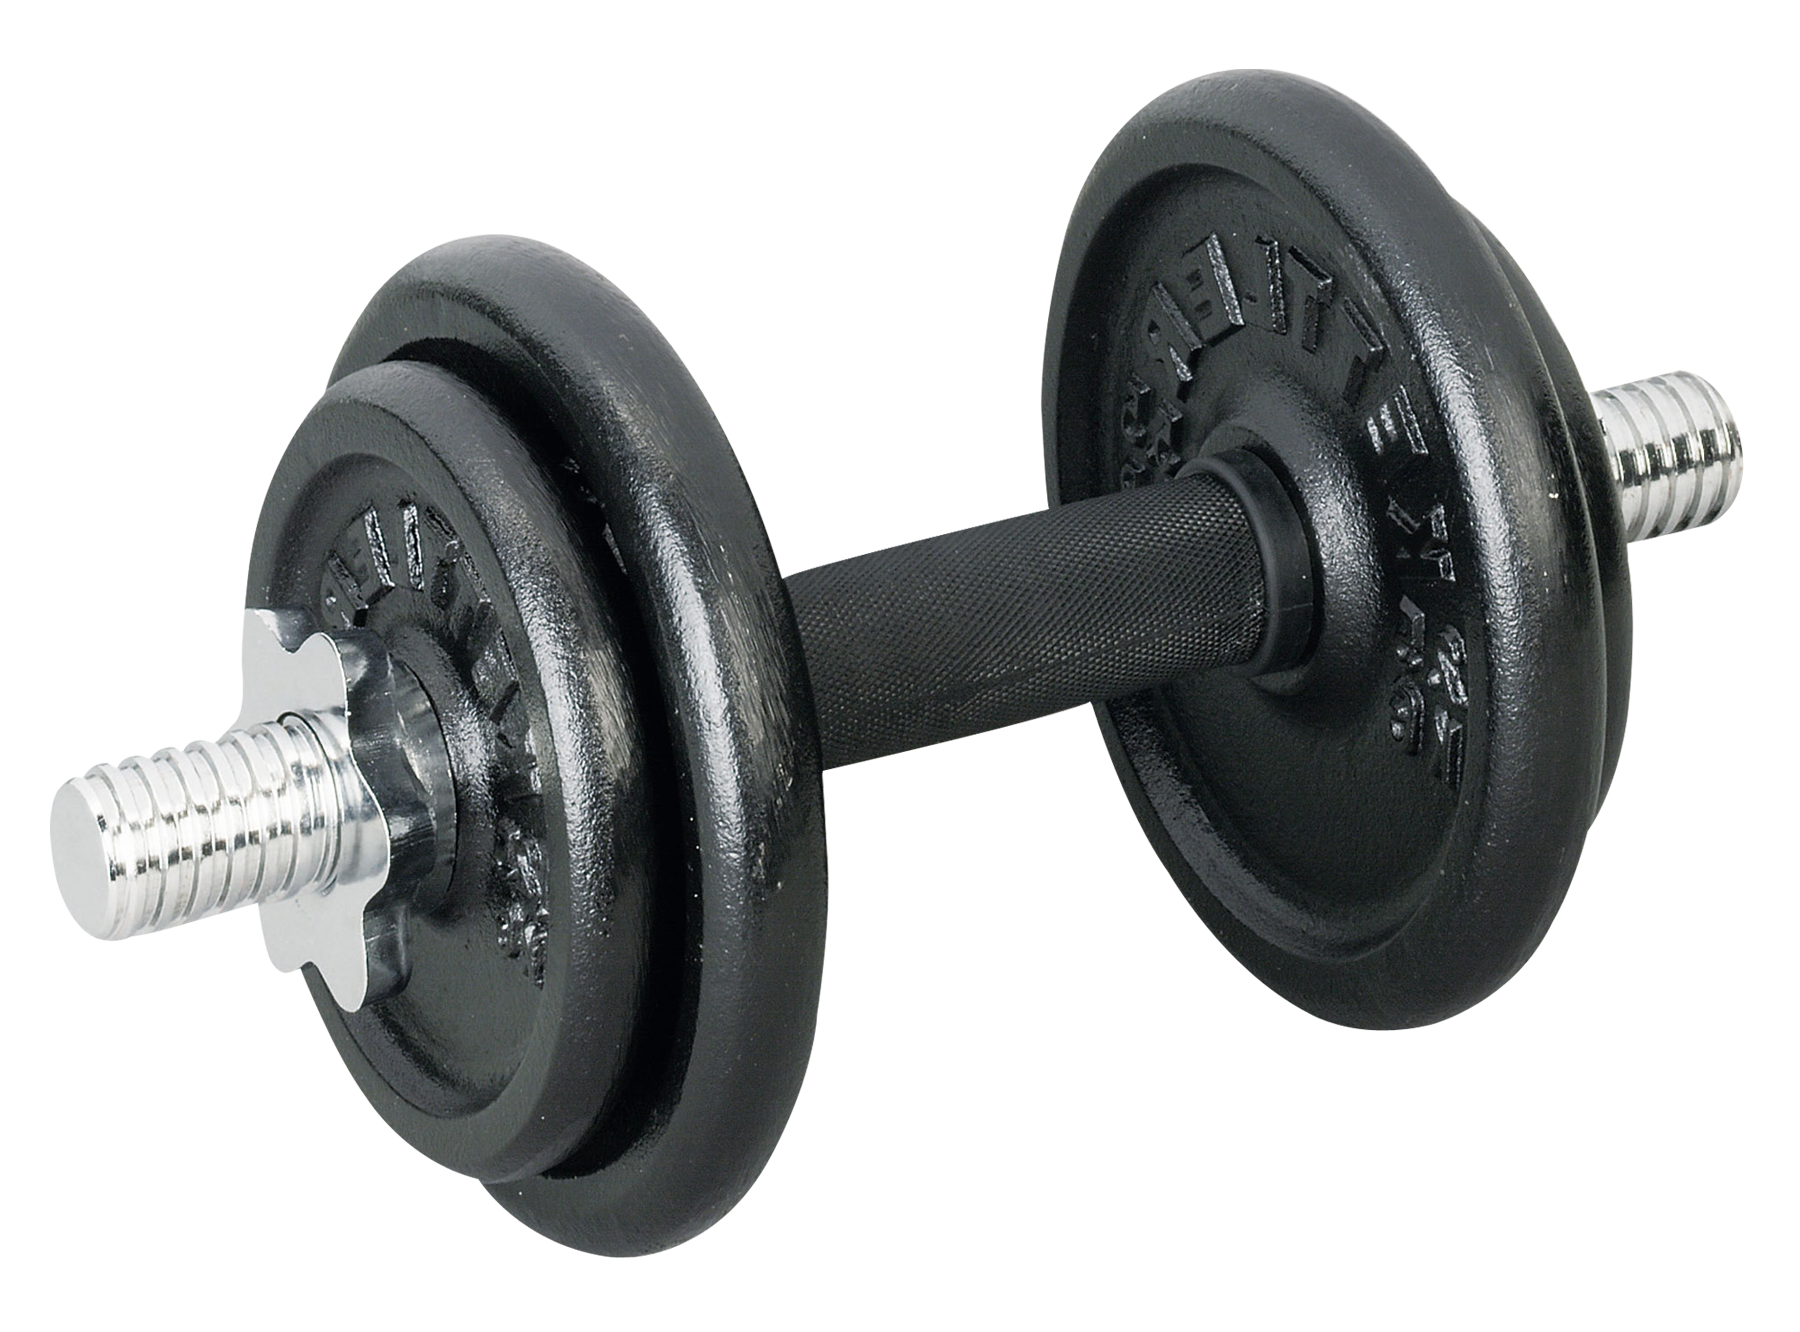 Weight clipart transparent background. Dumbbell hantel png image